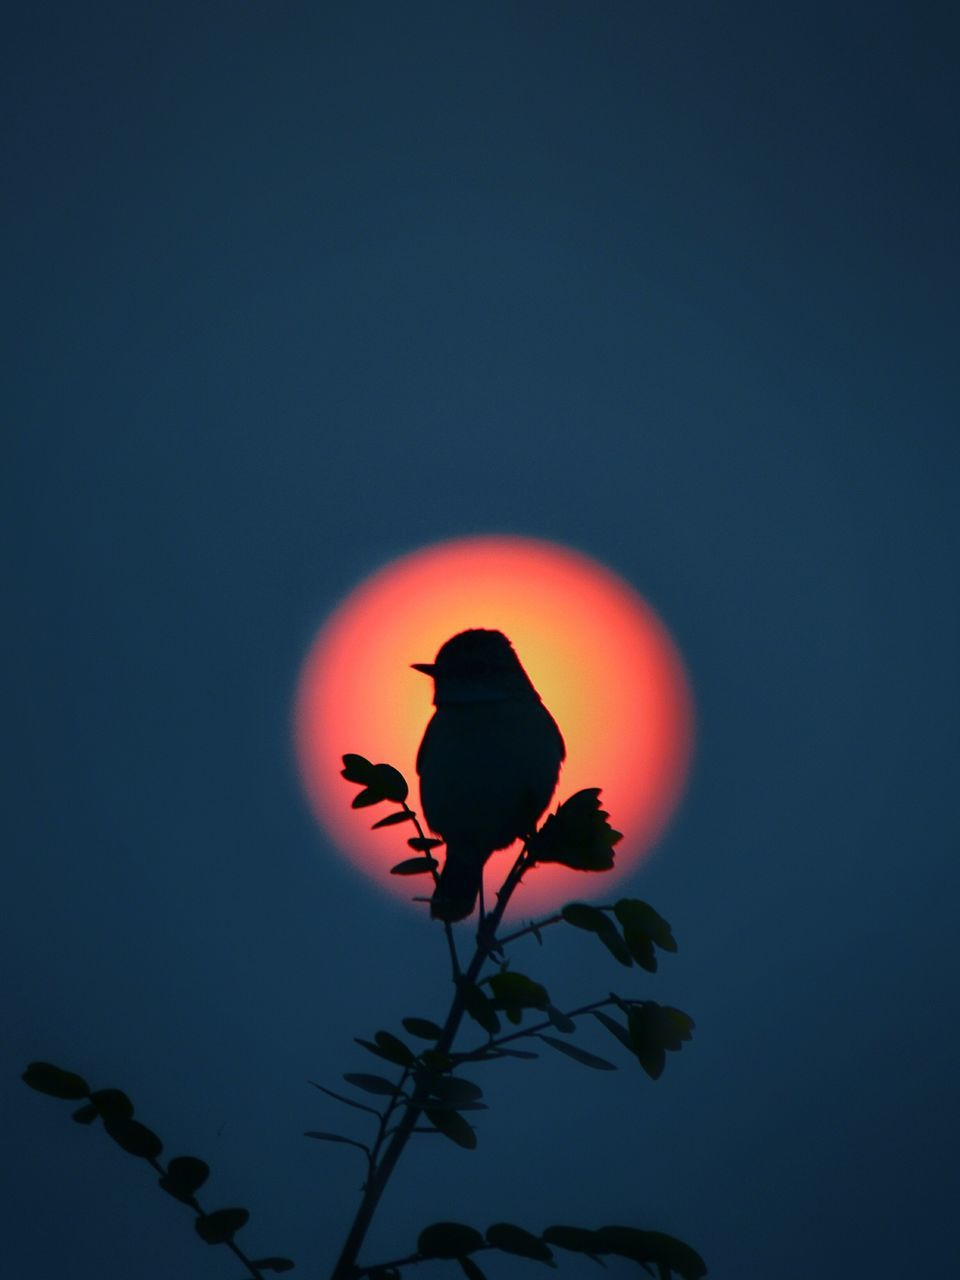 sky, plant, silhouette, nature, beauty in nature, vertebrate, orange color, animal themes, animal, animal wildlife, no people, sunset, animals in the wild, flower, bird, night, flowering plant, copy space, low angle view, outdoors, astronomy